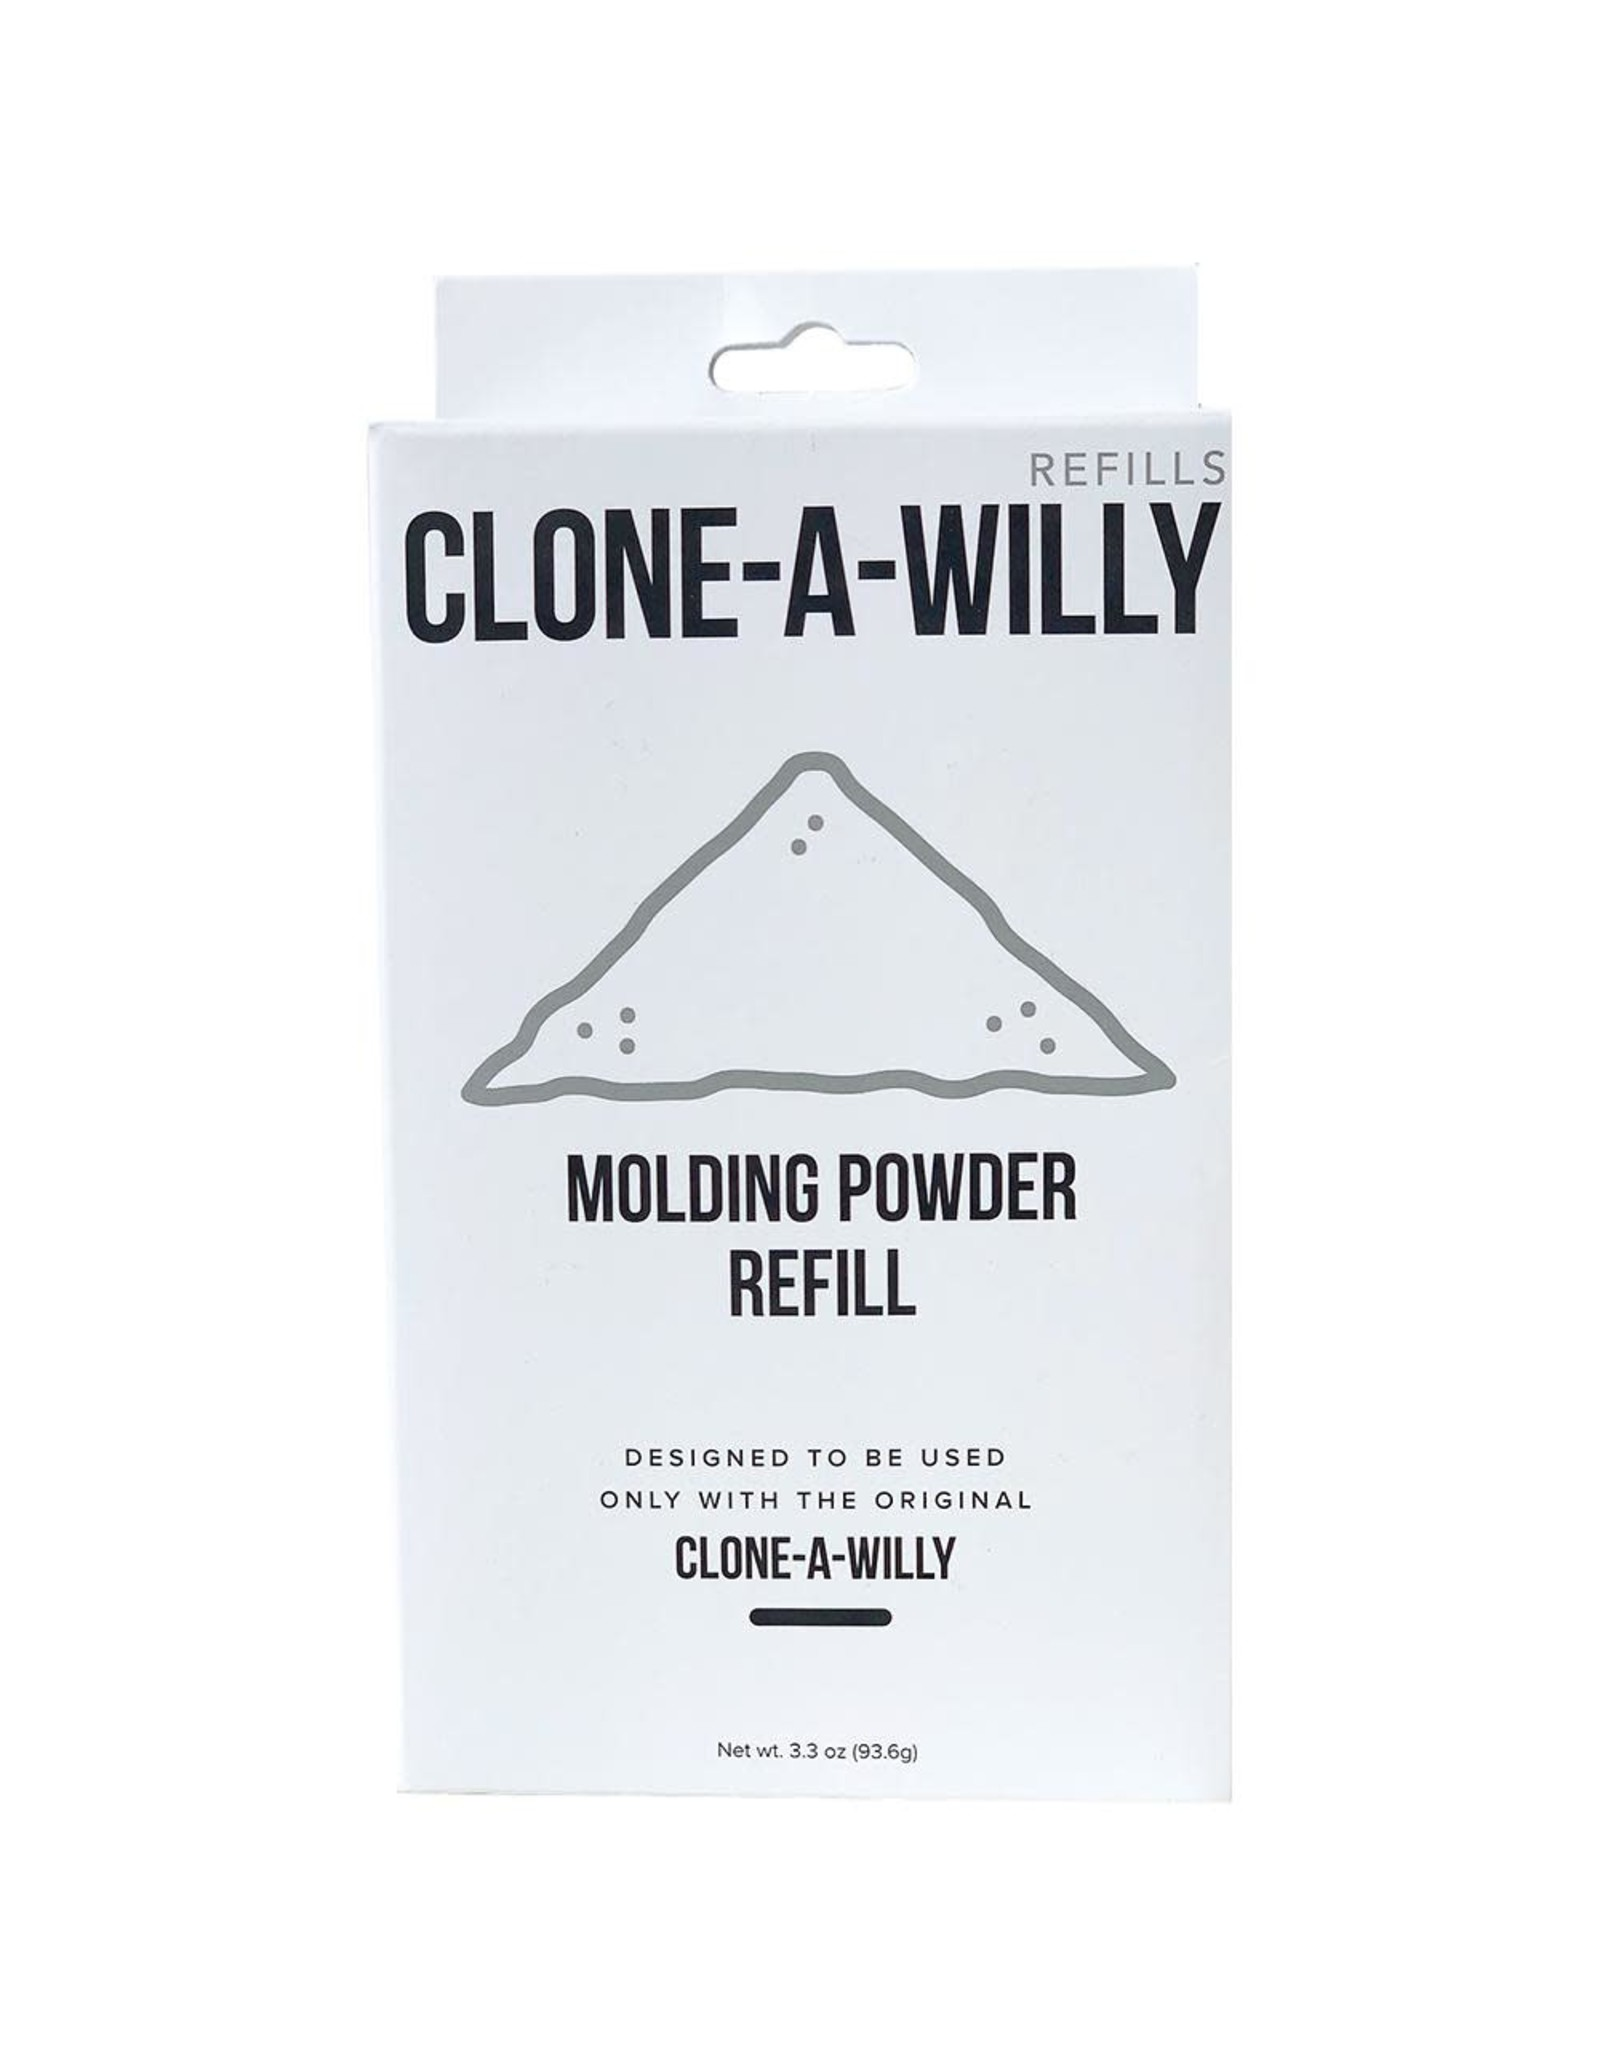 CLONE-A-WILLY REFIL MOLDING POWDER 3.3OZ